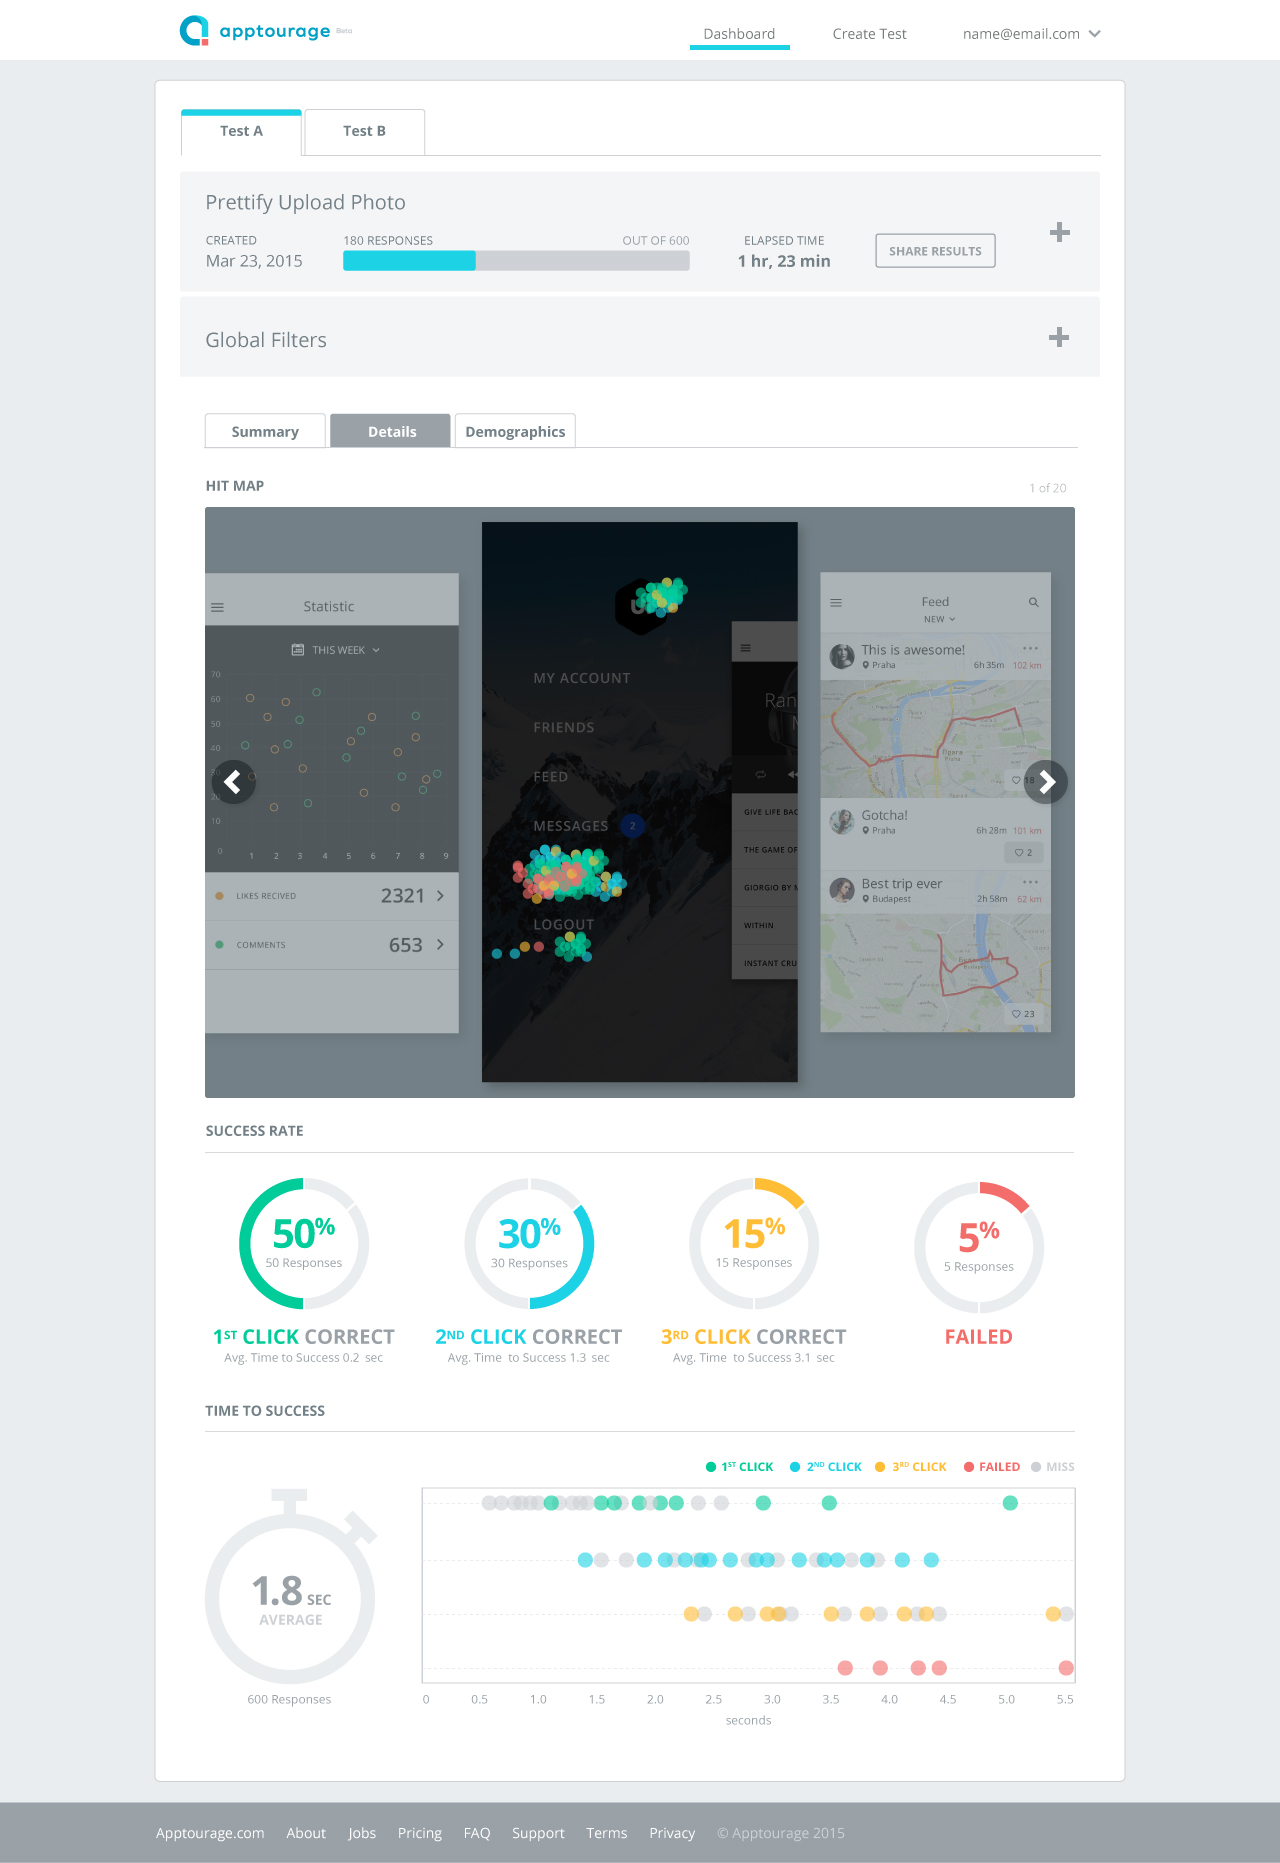 Multi-flow screens, A/B test dashboard